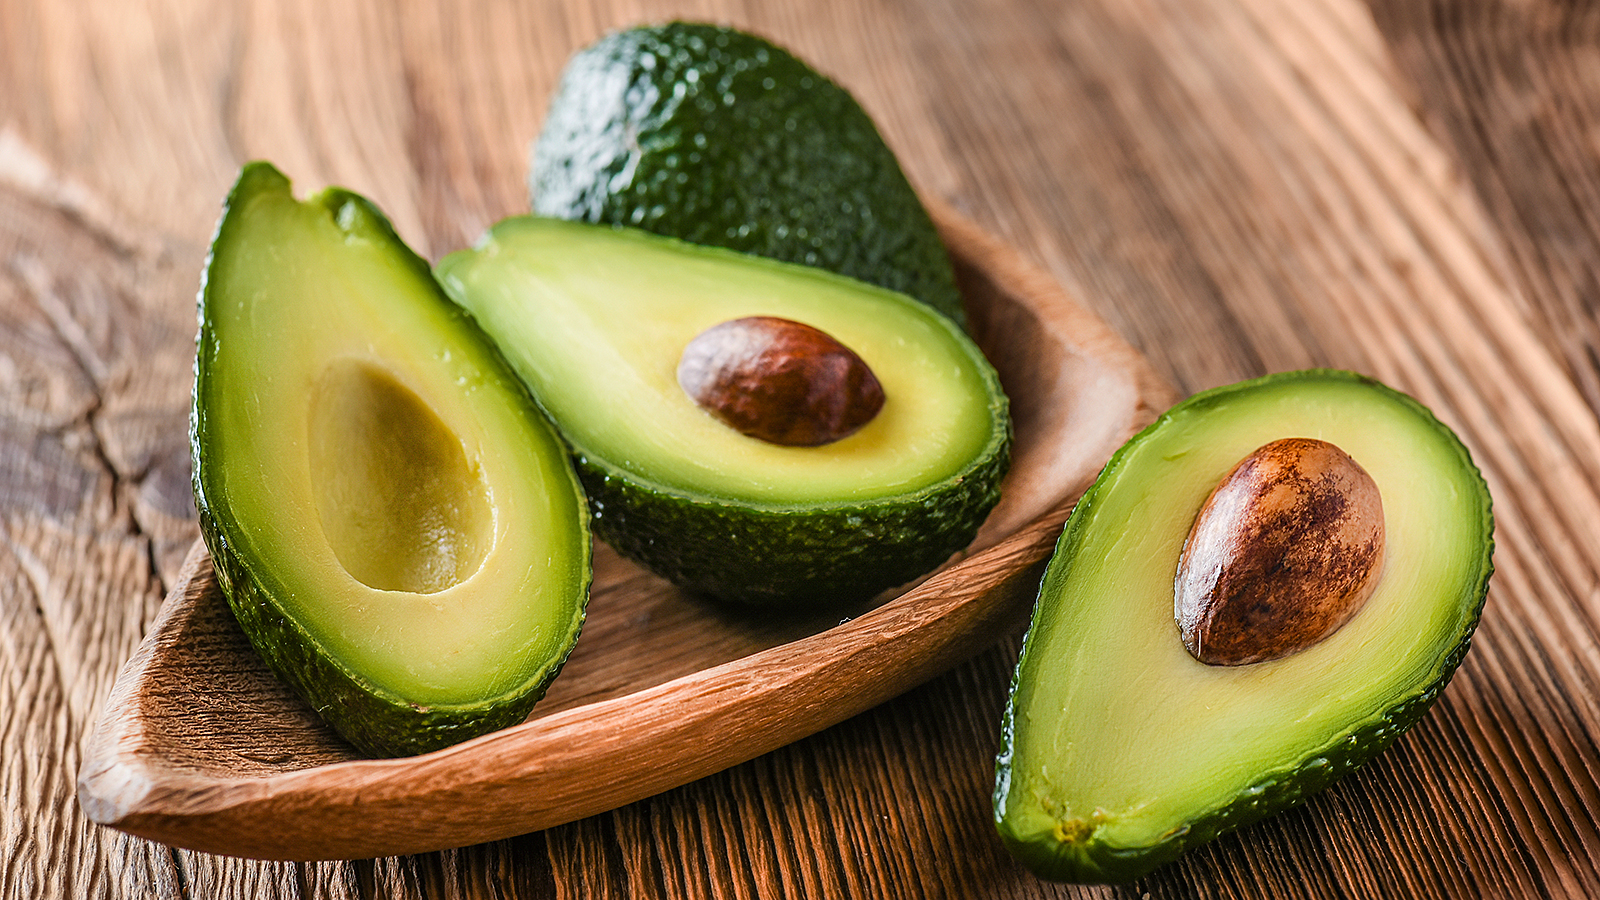 This is the state that is the most obsessed with avocados